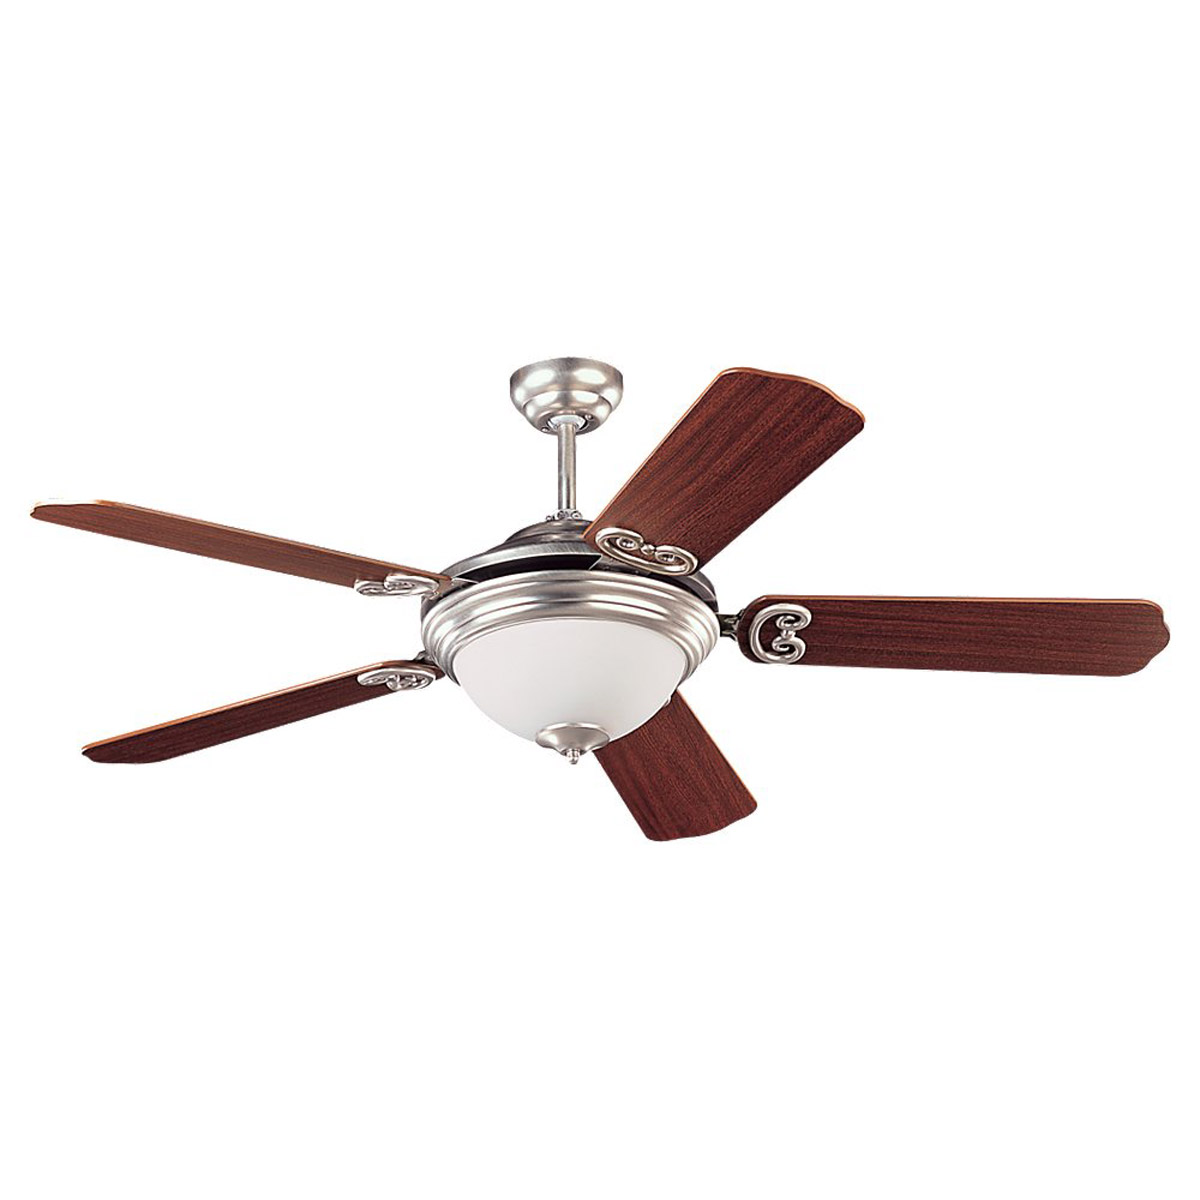 Sea Gull Lighting Park Avenue Elite 3 Light Ceiling Fan in Brushed Nickel 15190BLE-962 photo